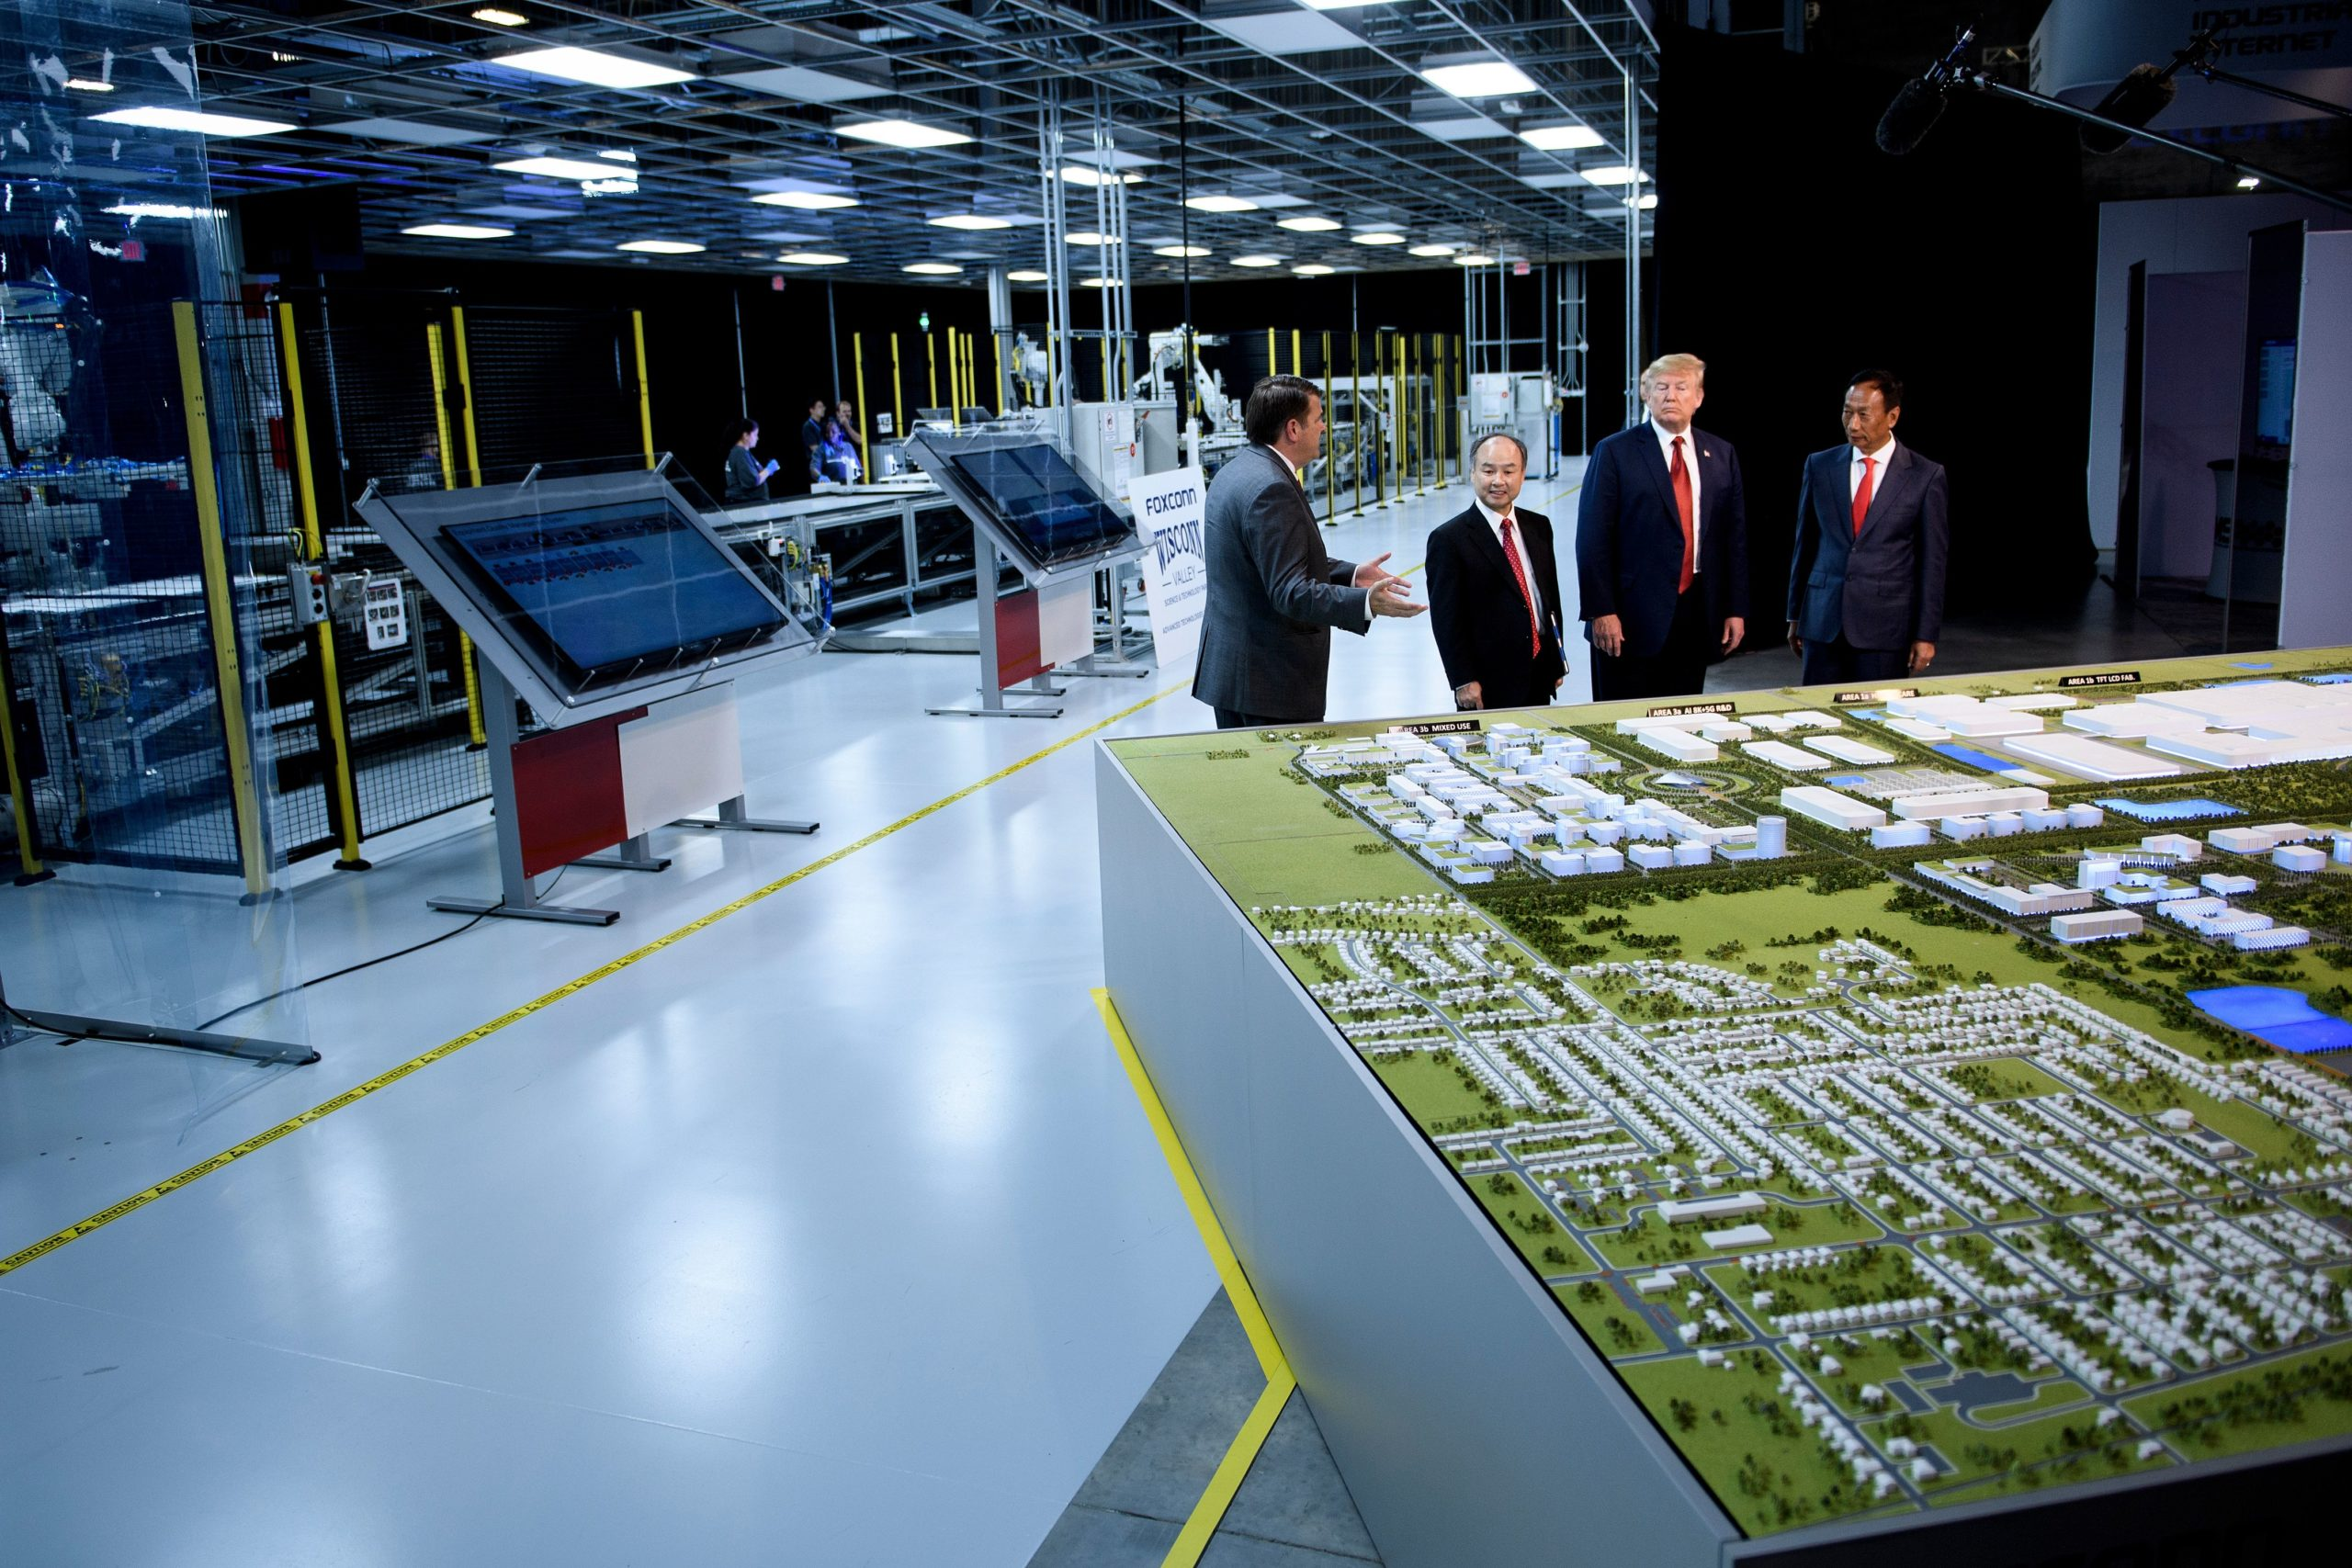 Former President Donald Trump and former Foxconn Chairman Terry Gou tour a Foxconn facility at the Wisconsin Valley Science and Technology Park on June 28, 2018 in Mount Pleasant, Wisconsin. (Brendan Smialowski/AFP via Getty Images)